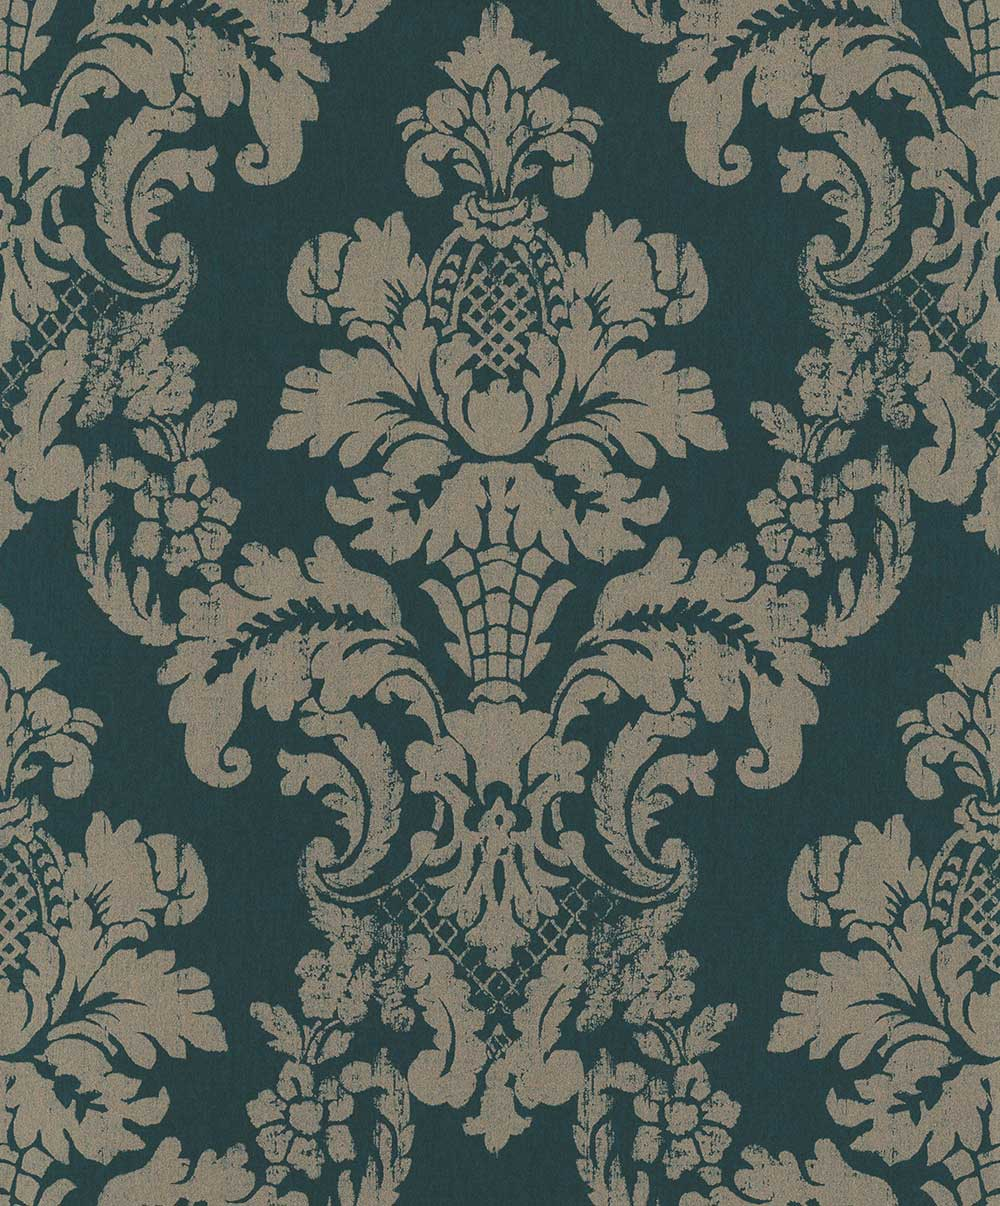 Albany Distressed Damask Green Wallpaper - Product code: 200252